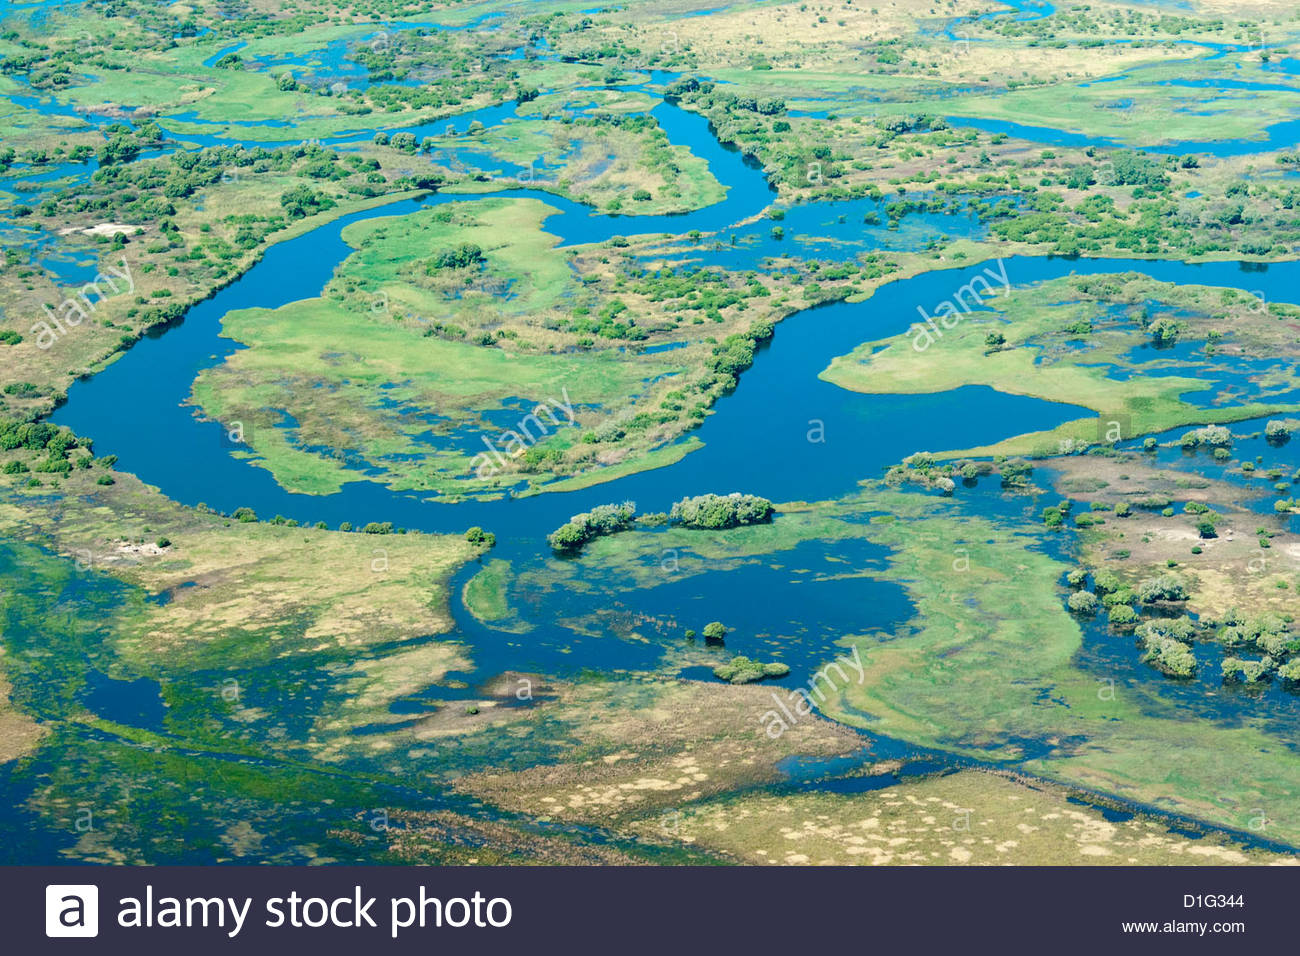 Aerial view of floodplains and islands along Zambezi and ...